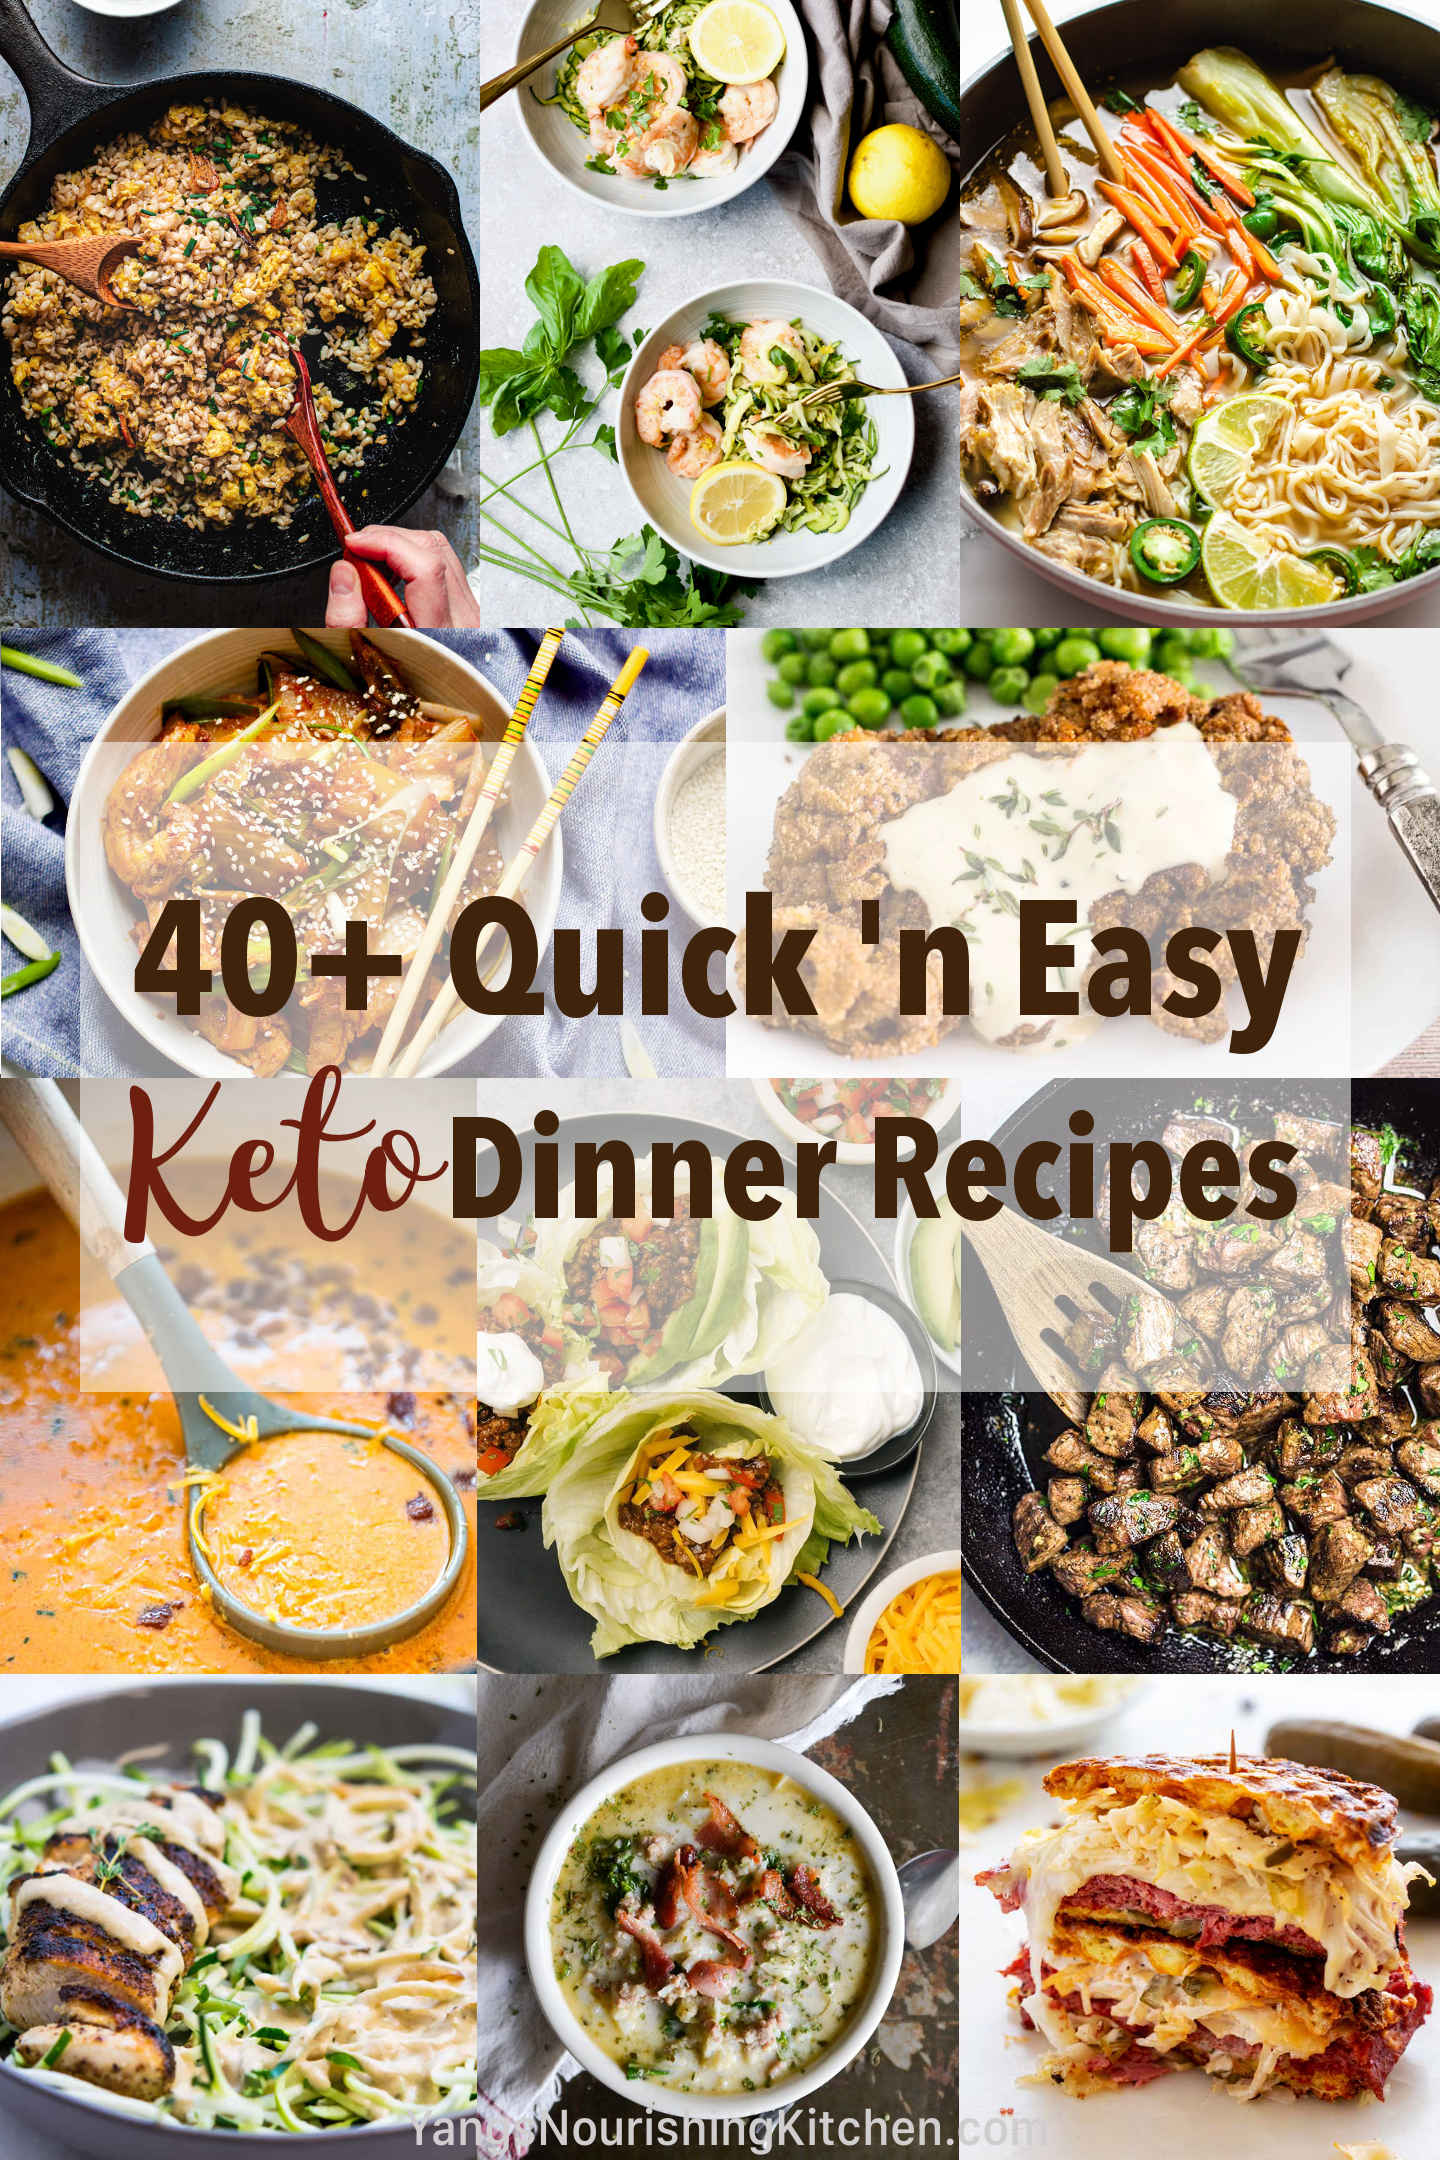 40+ quick and easy keto dinner recipes